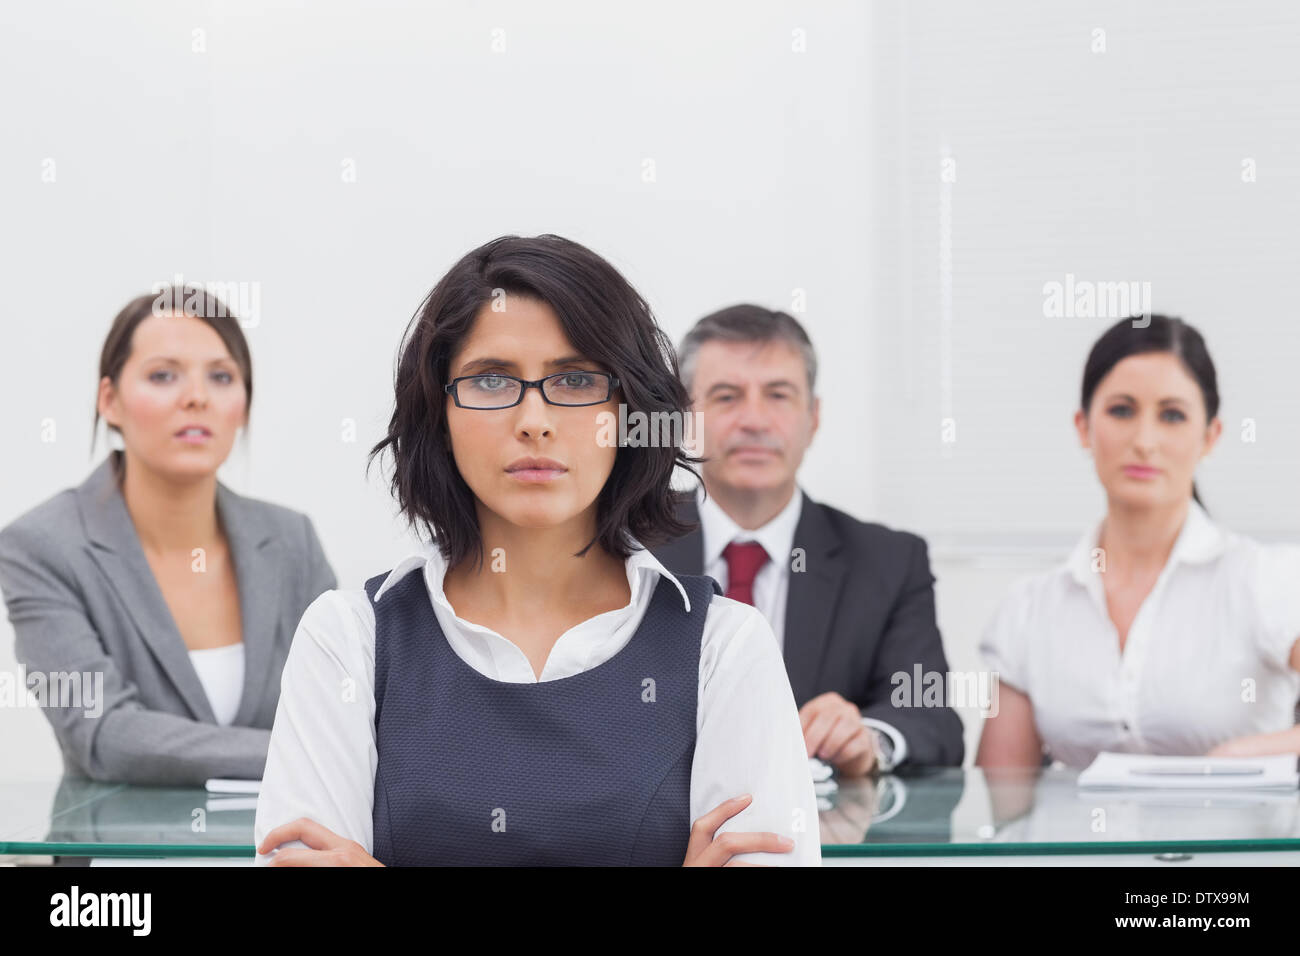 Four business people with serious expressions - Stock Image